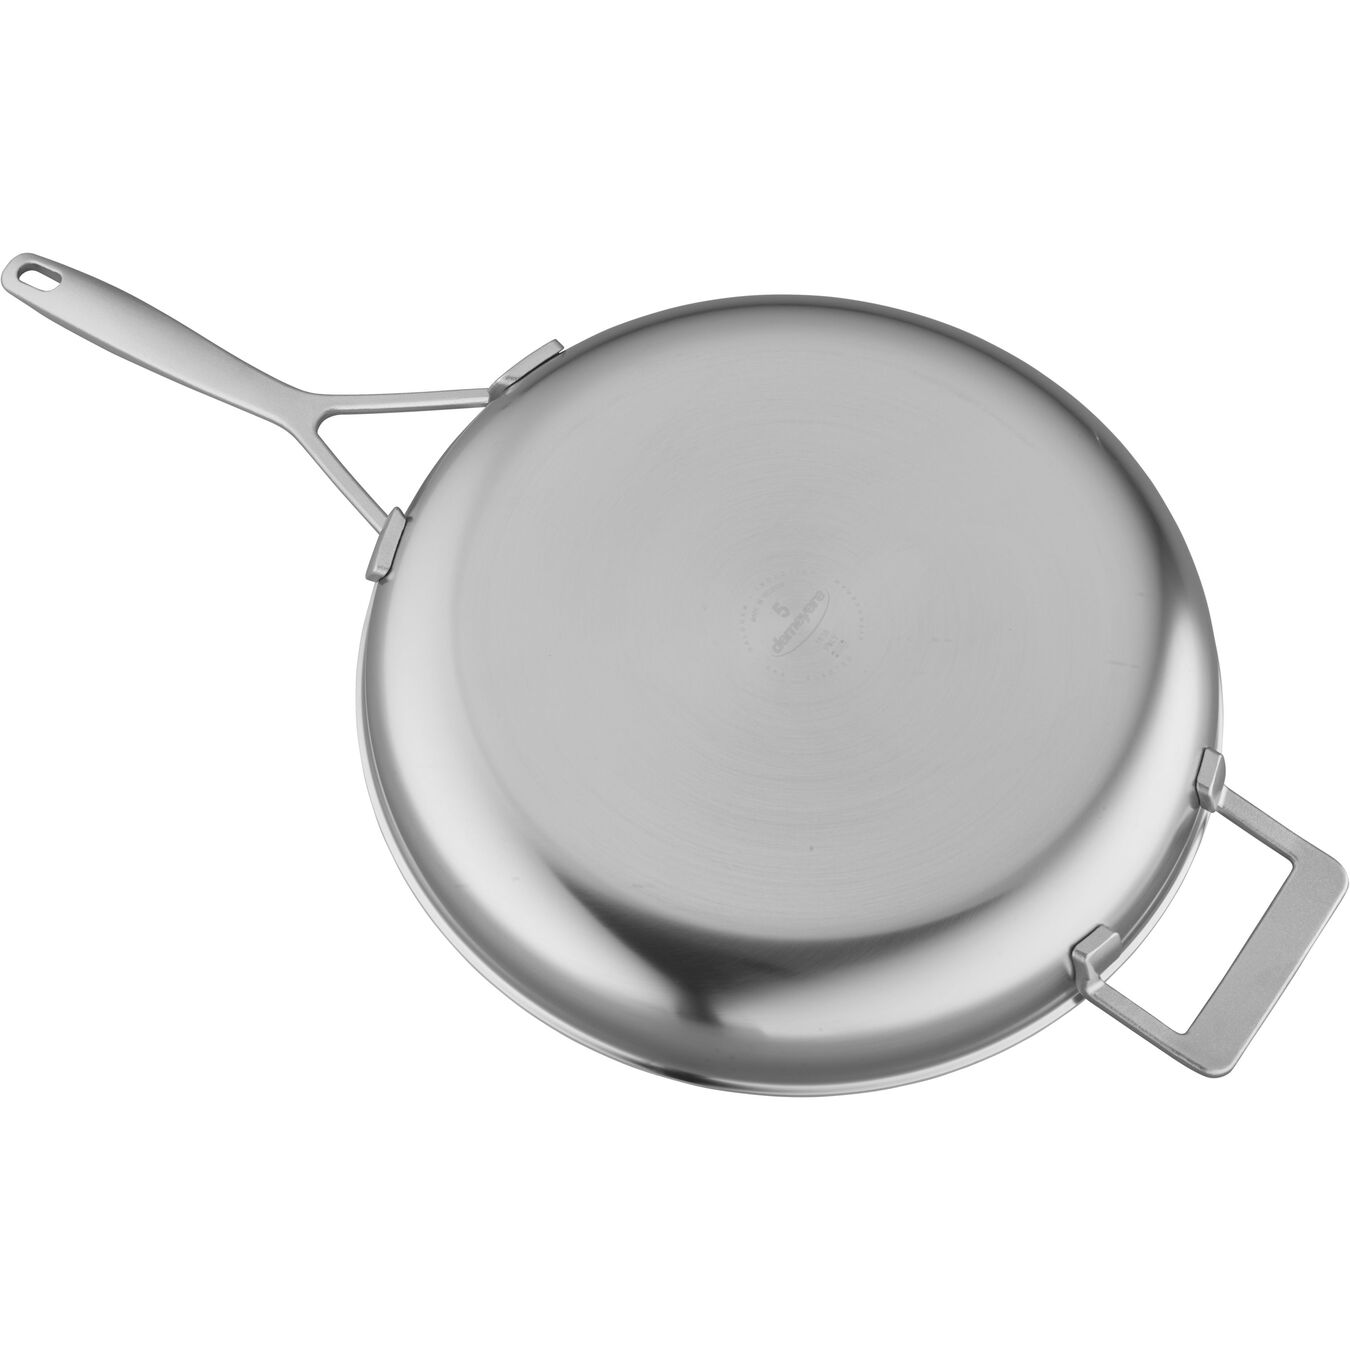 12.5-inch, 18/10 Stainless Steel, Frying pan,,large 2